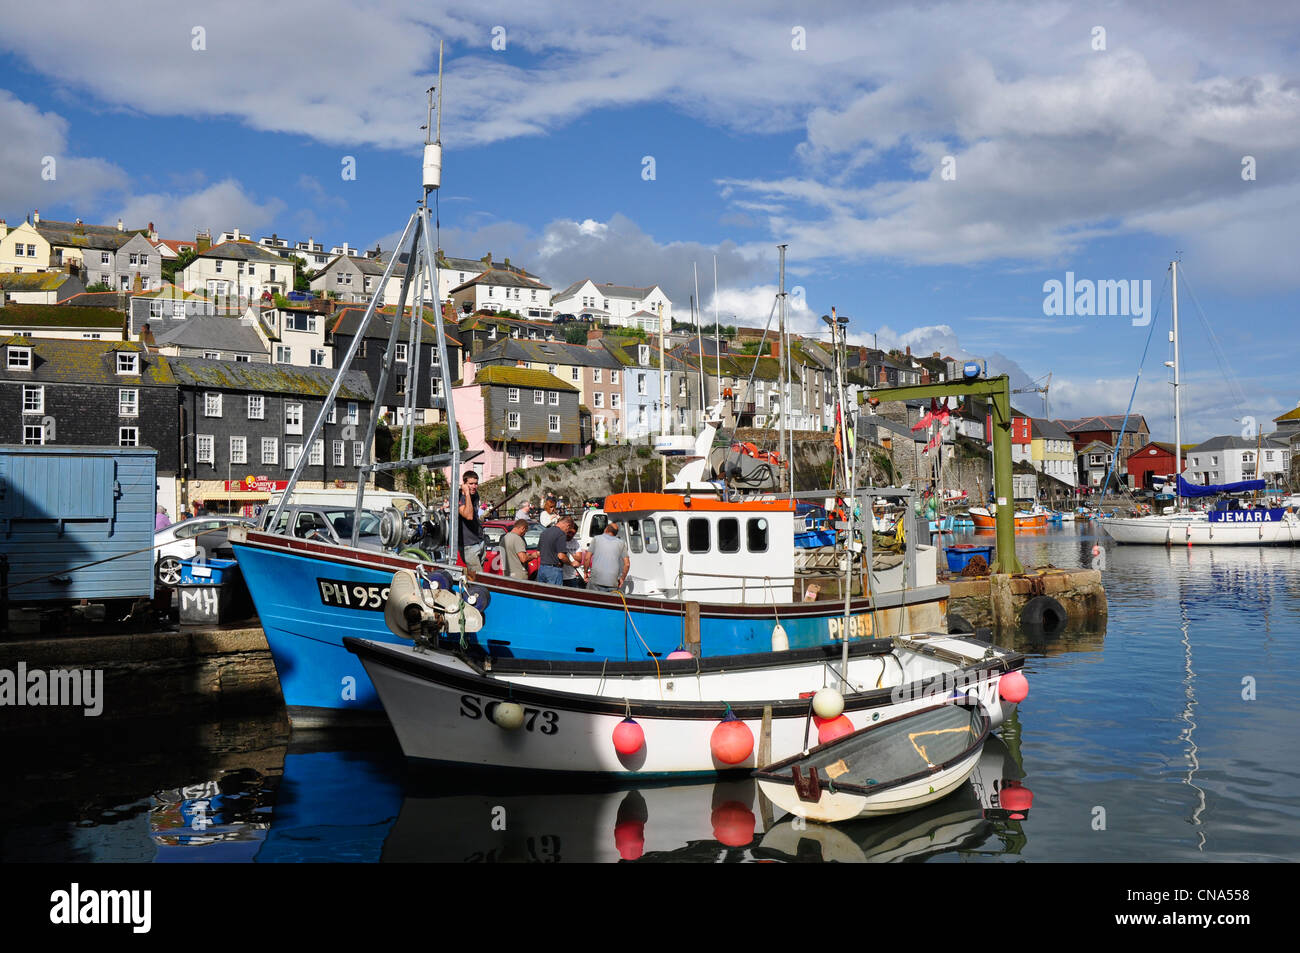 Commercial fishing boats - Padstow harbour - summer sunlight - cloud flecked blue sky - Stock Image